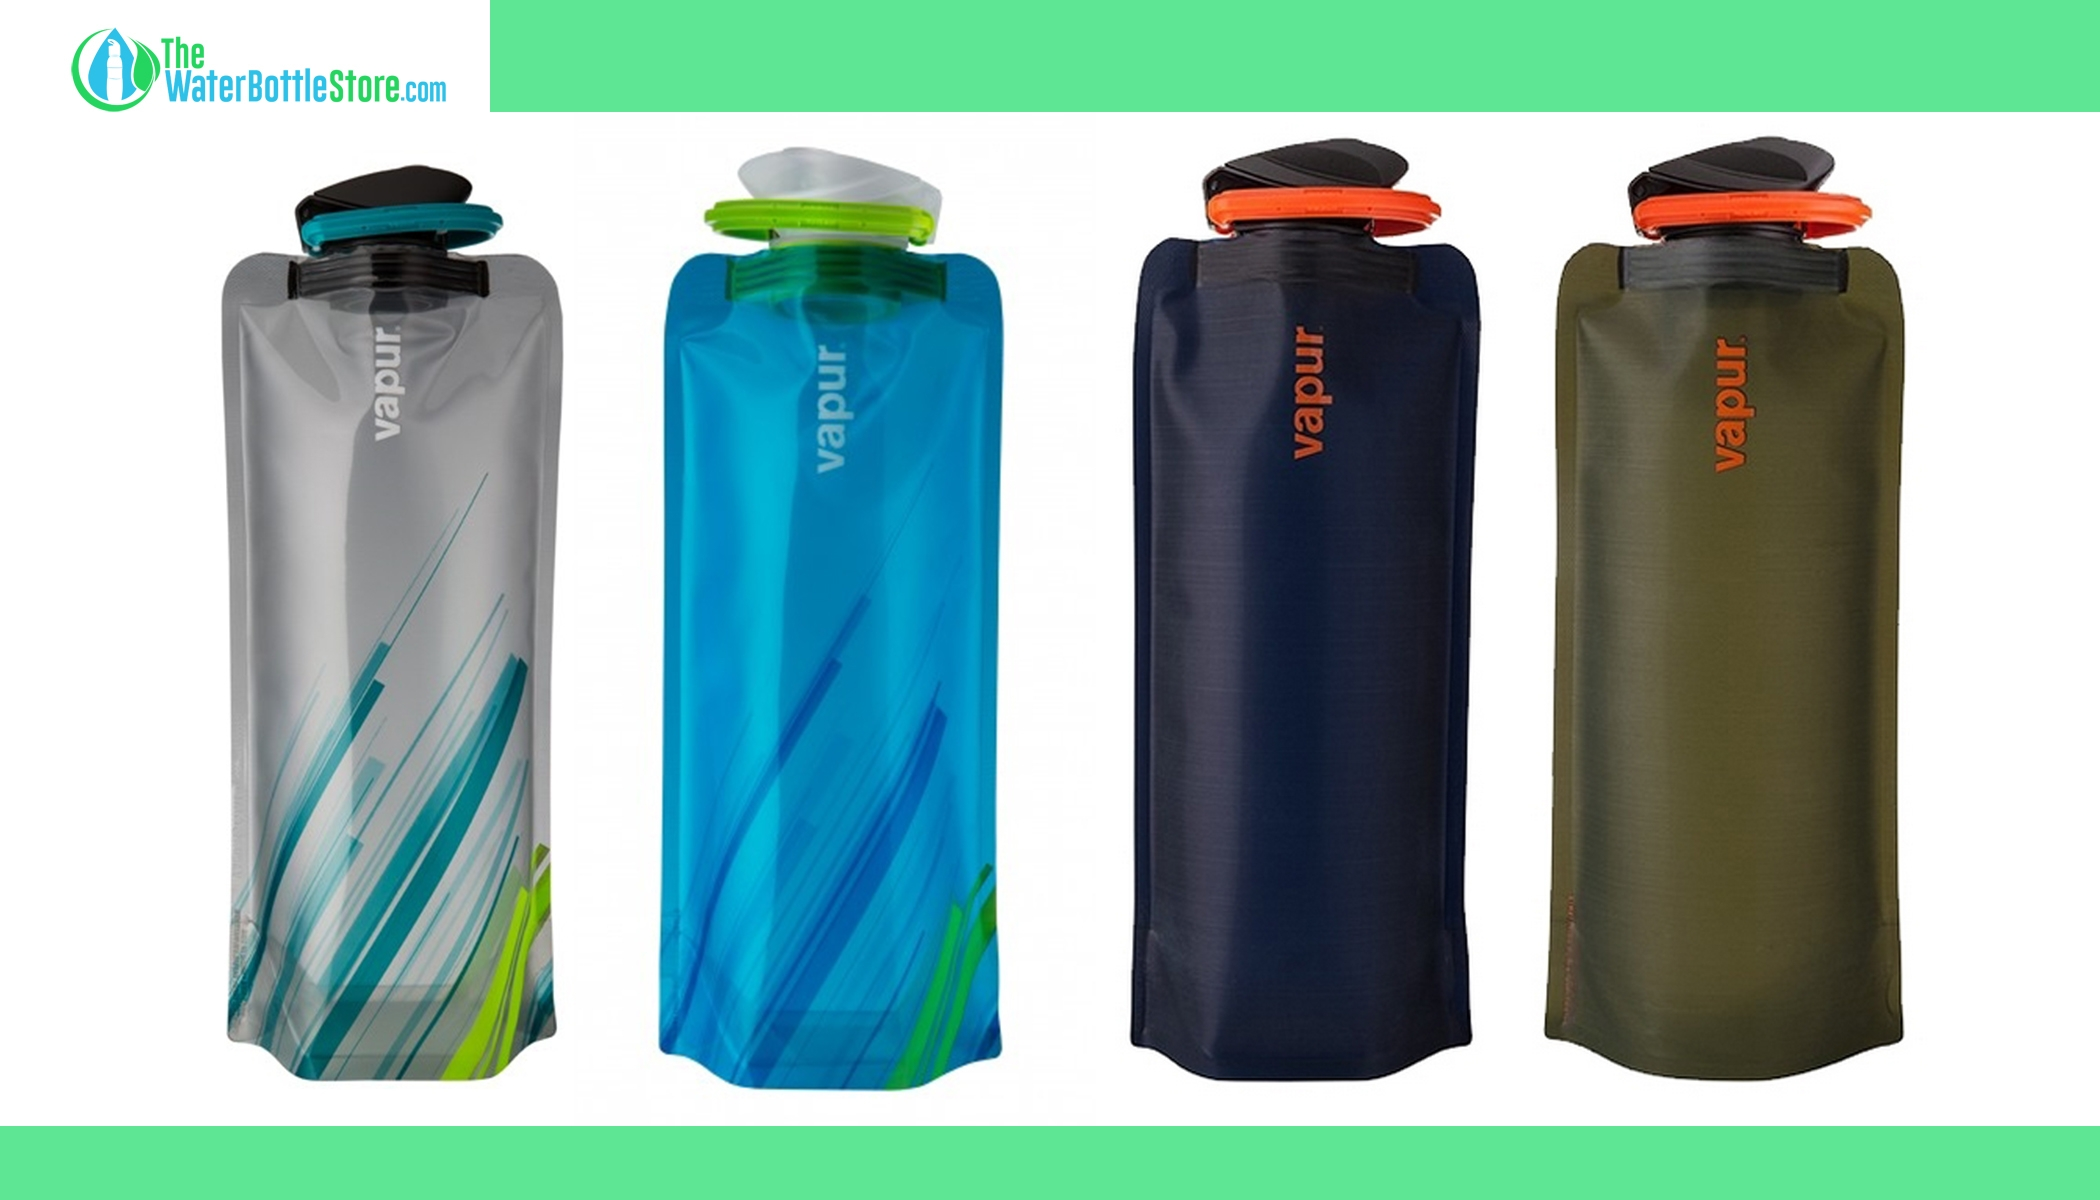 Reusable Water Bottles Best Online (@thewaterbottlestore) Cover Image